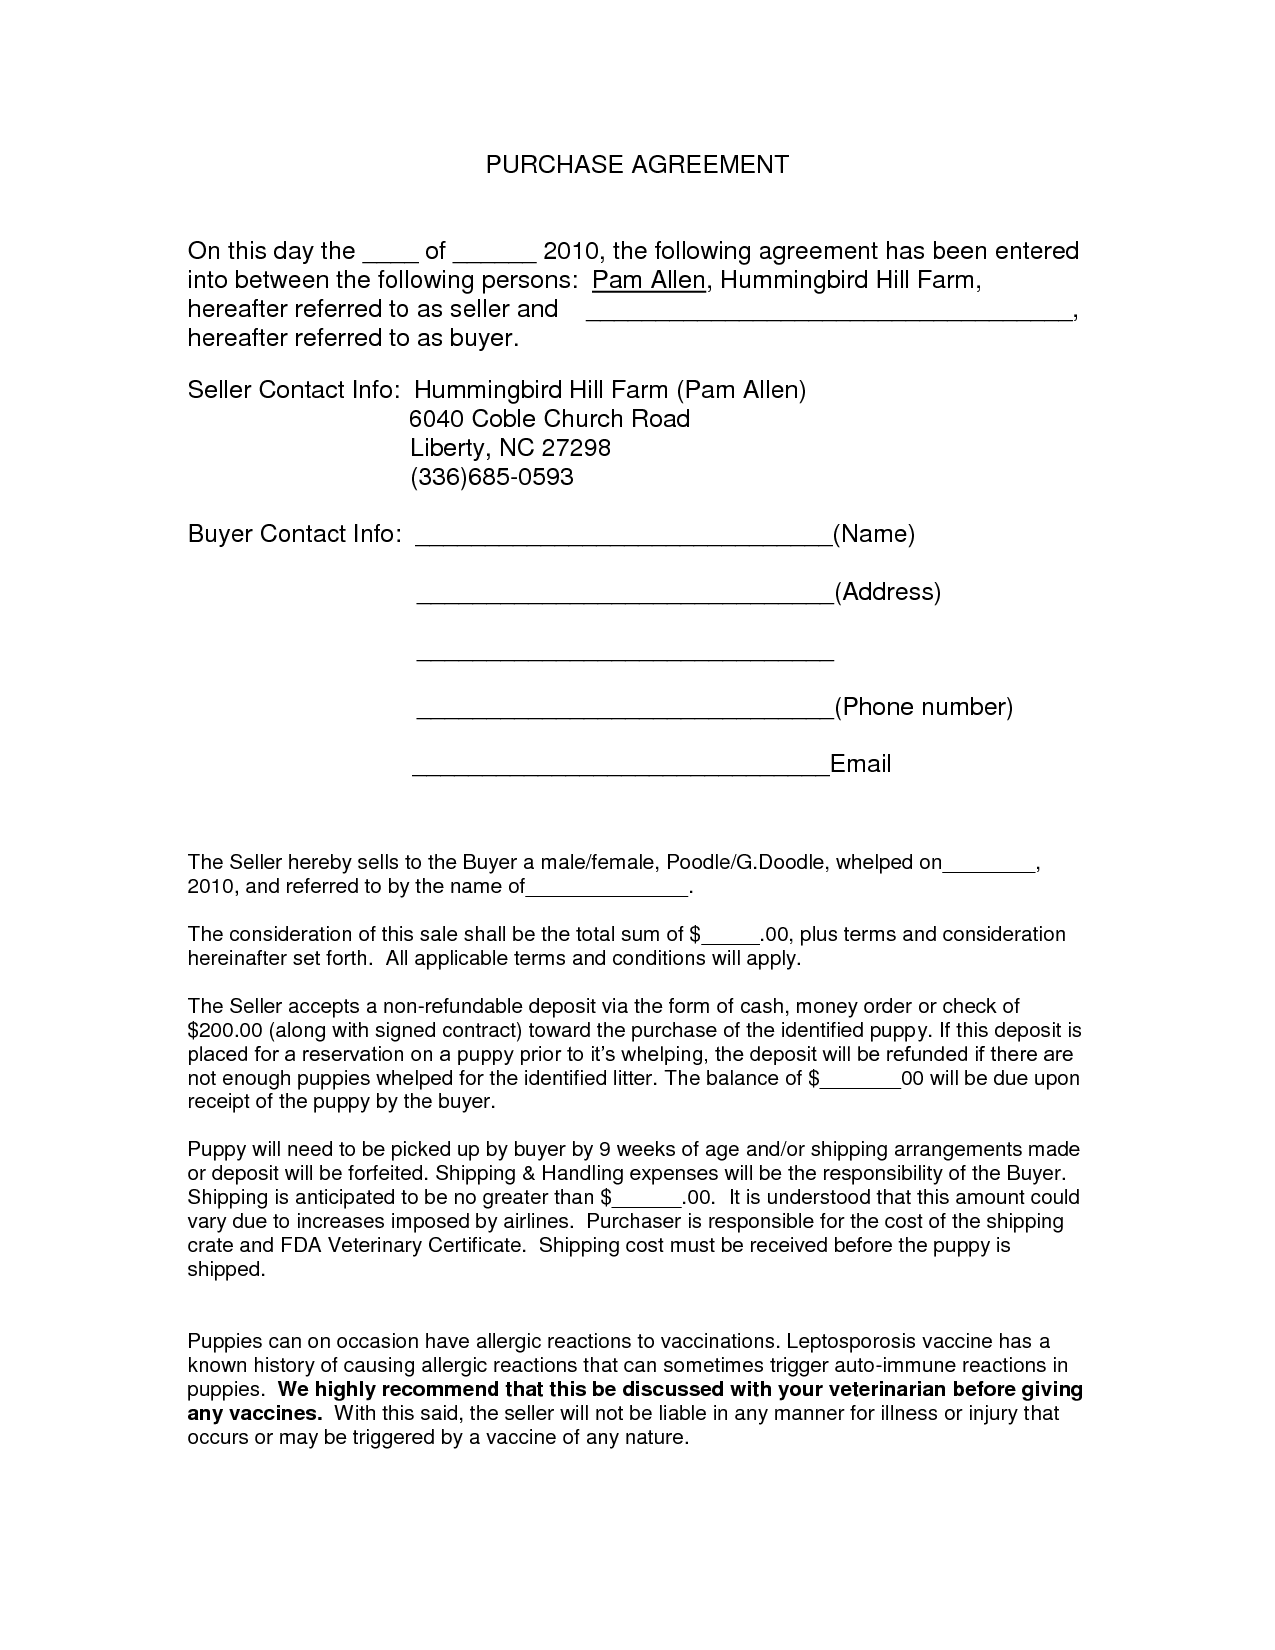 auto purchase agreement form doc by nyy13910 purchase contract template real state. Black Bedroom Furniture Sets. Home Design Ideas